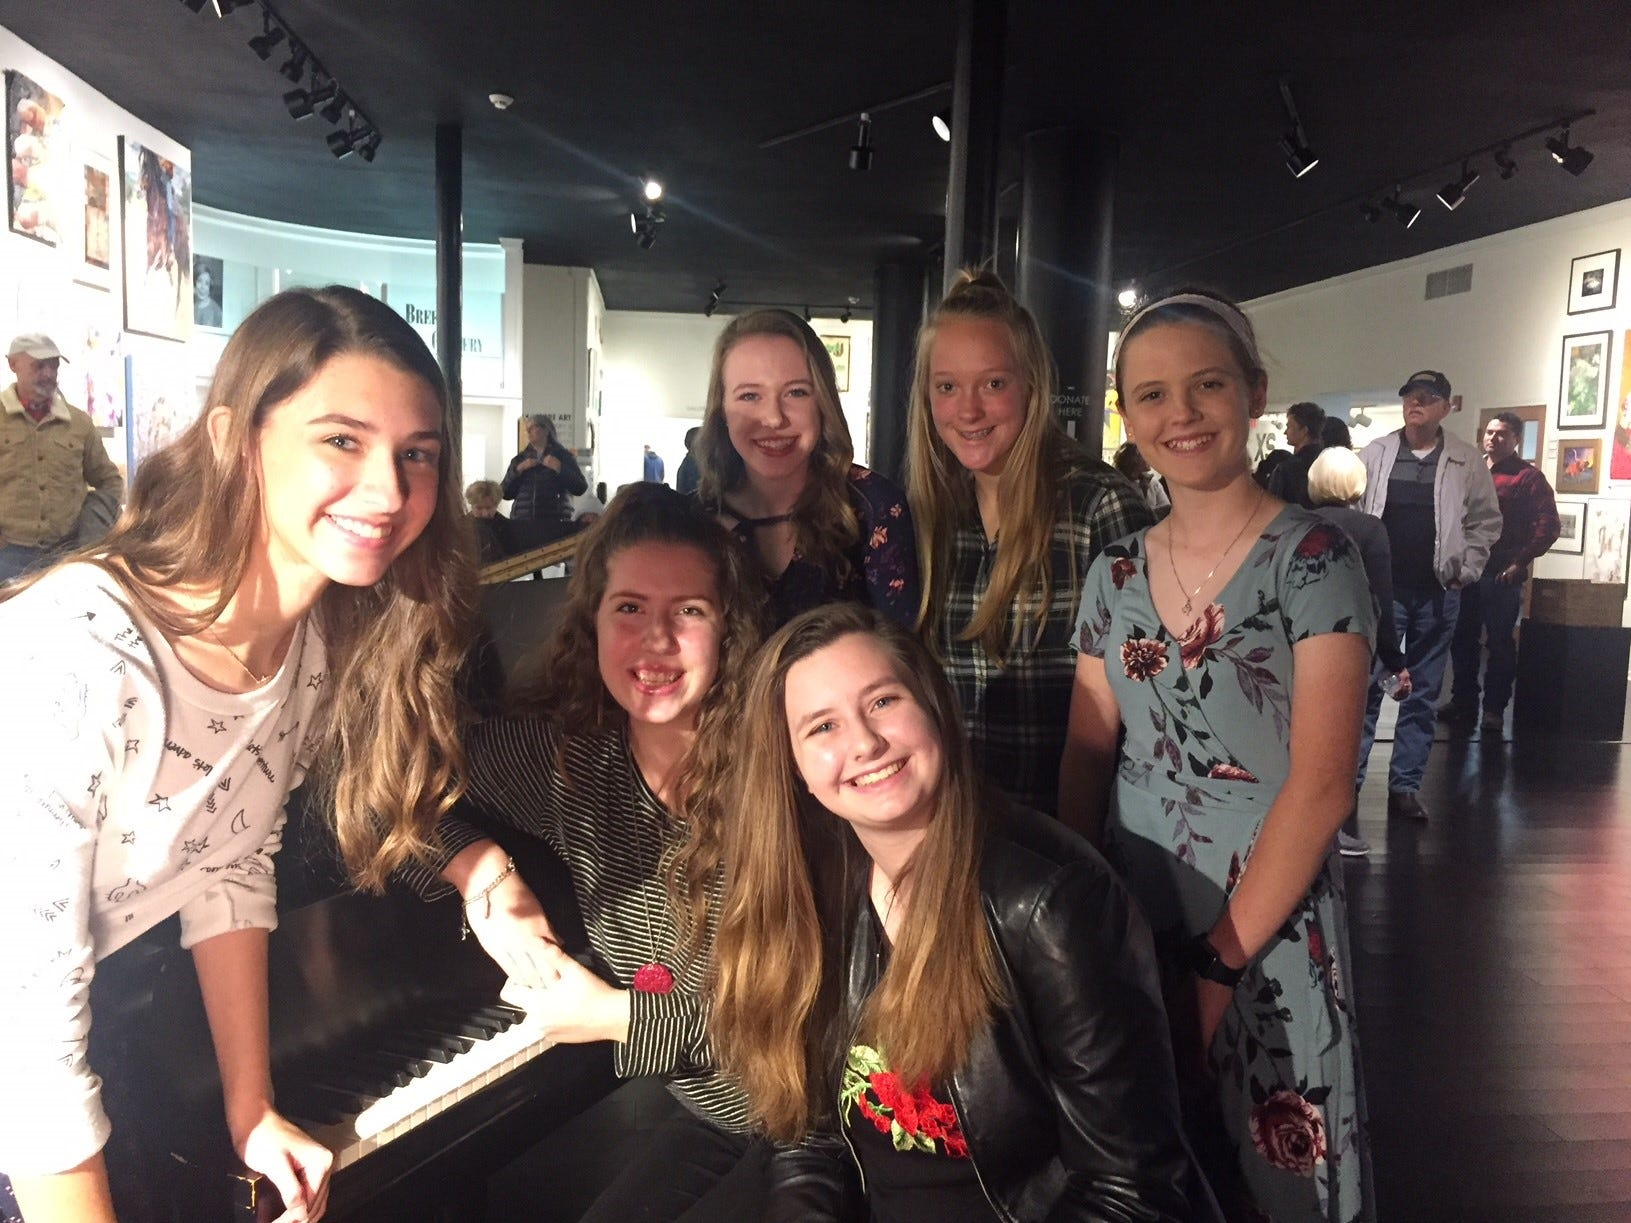 Katie Moore, Isabelle Patterson, Rachel Flatt, Ashton Martin, Ali McElhaney and Amy Bond play the piano at the Center for Contemporary Arts during ArtWalk. All are students of Kathie Goodrich.